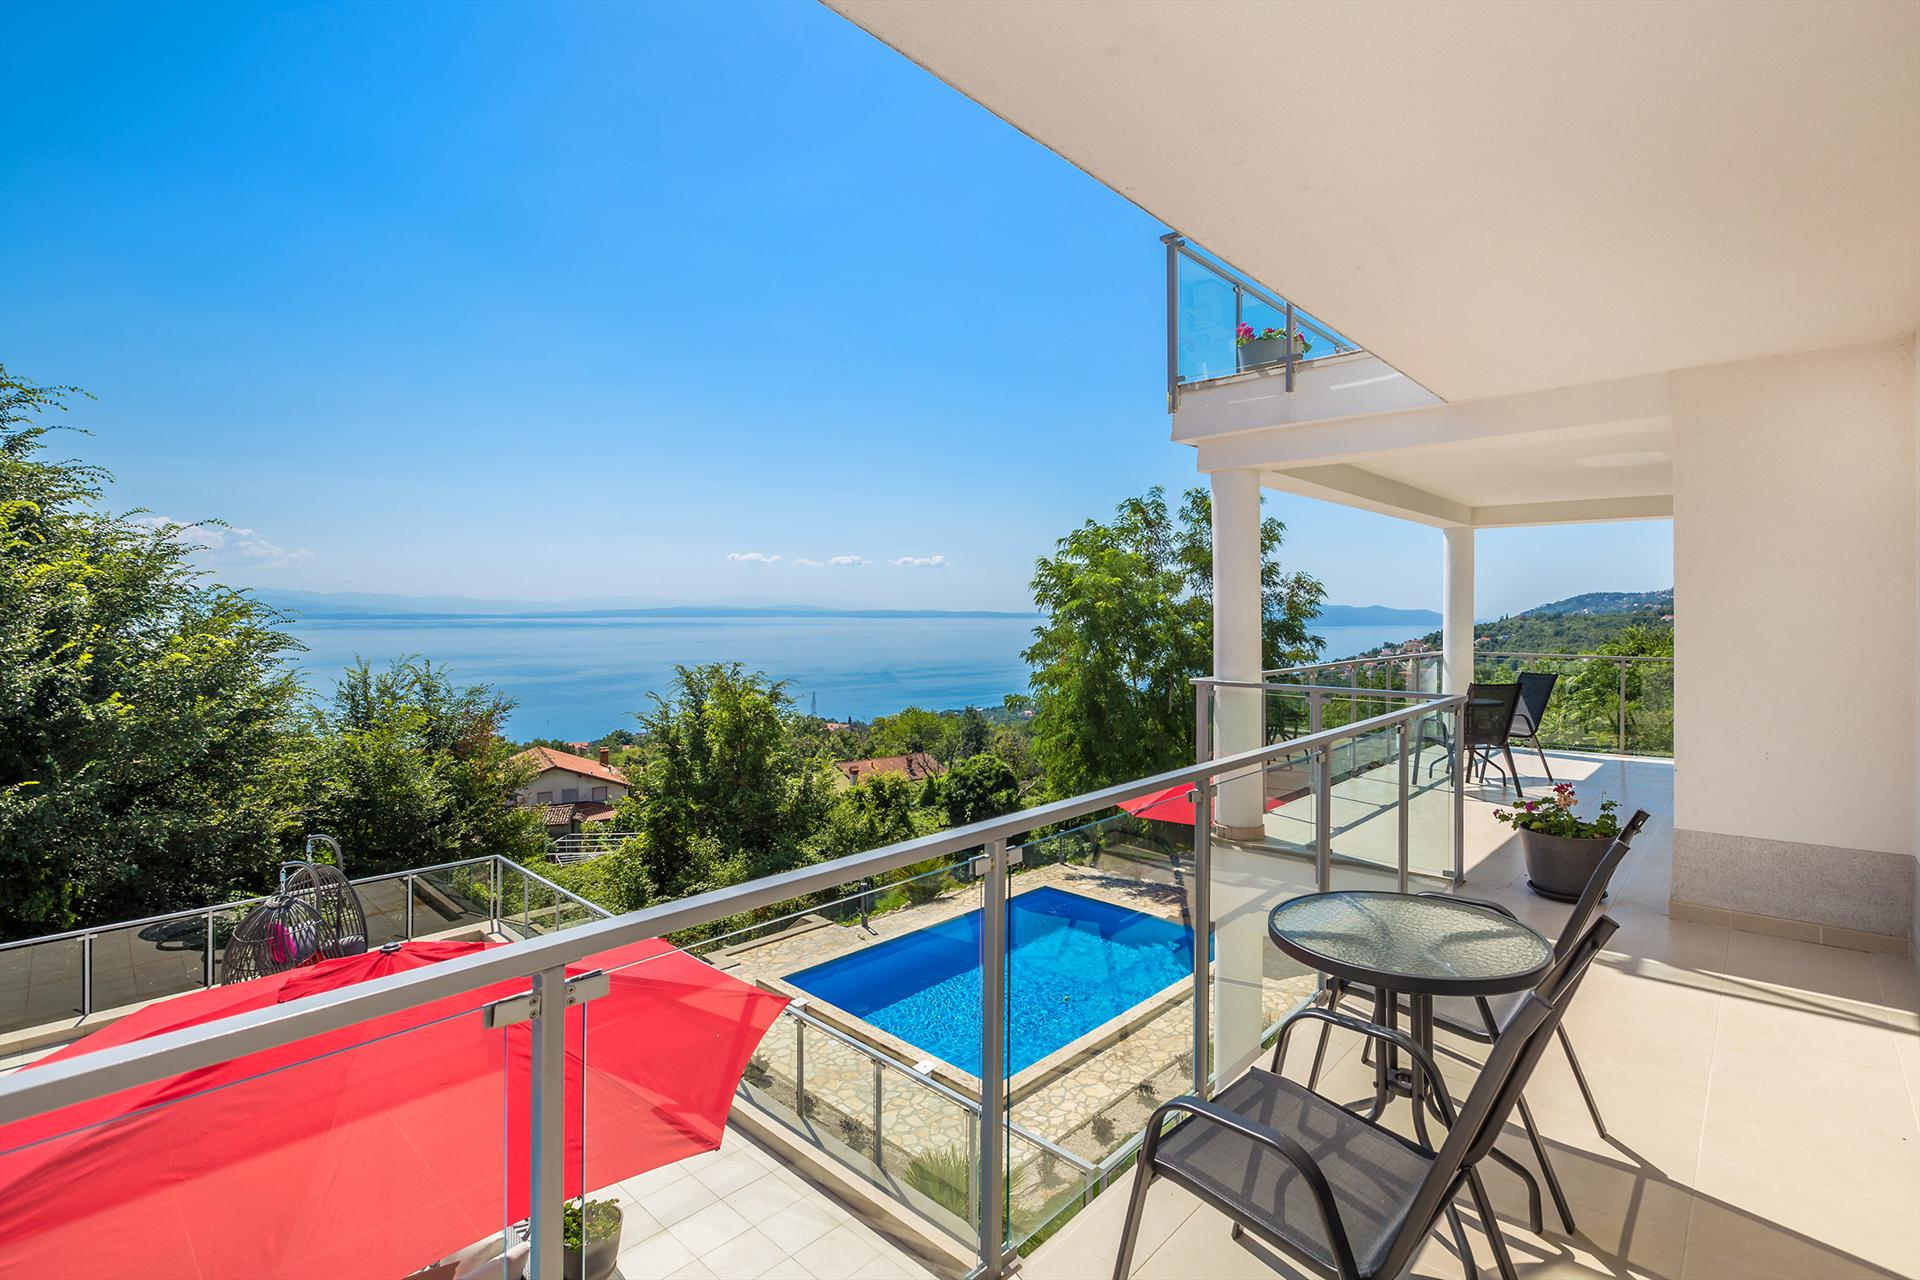 For Rent Luxurios Und Moderne Villa Mit Pool Und Meerblick Holiday